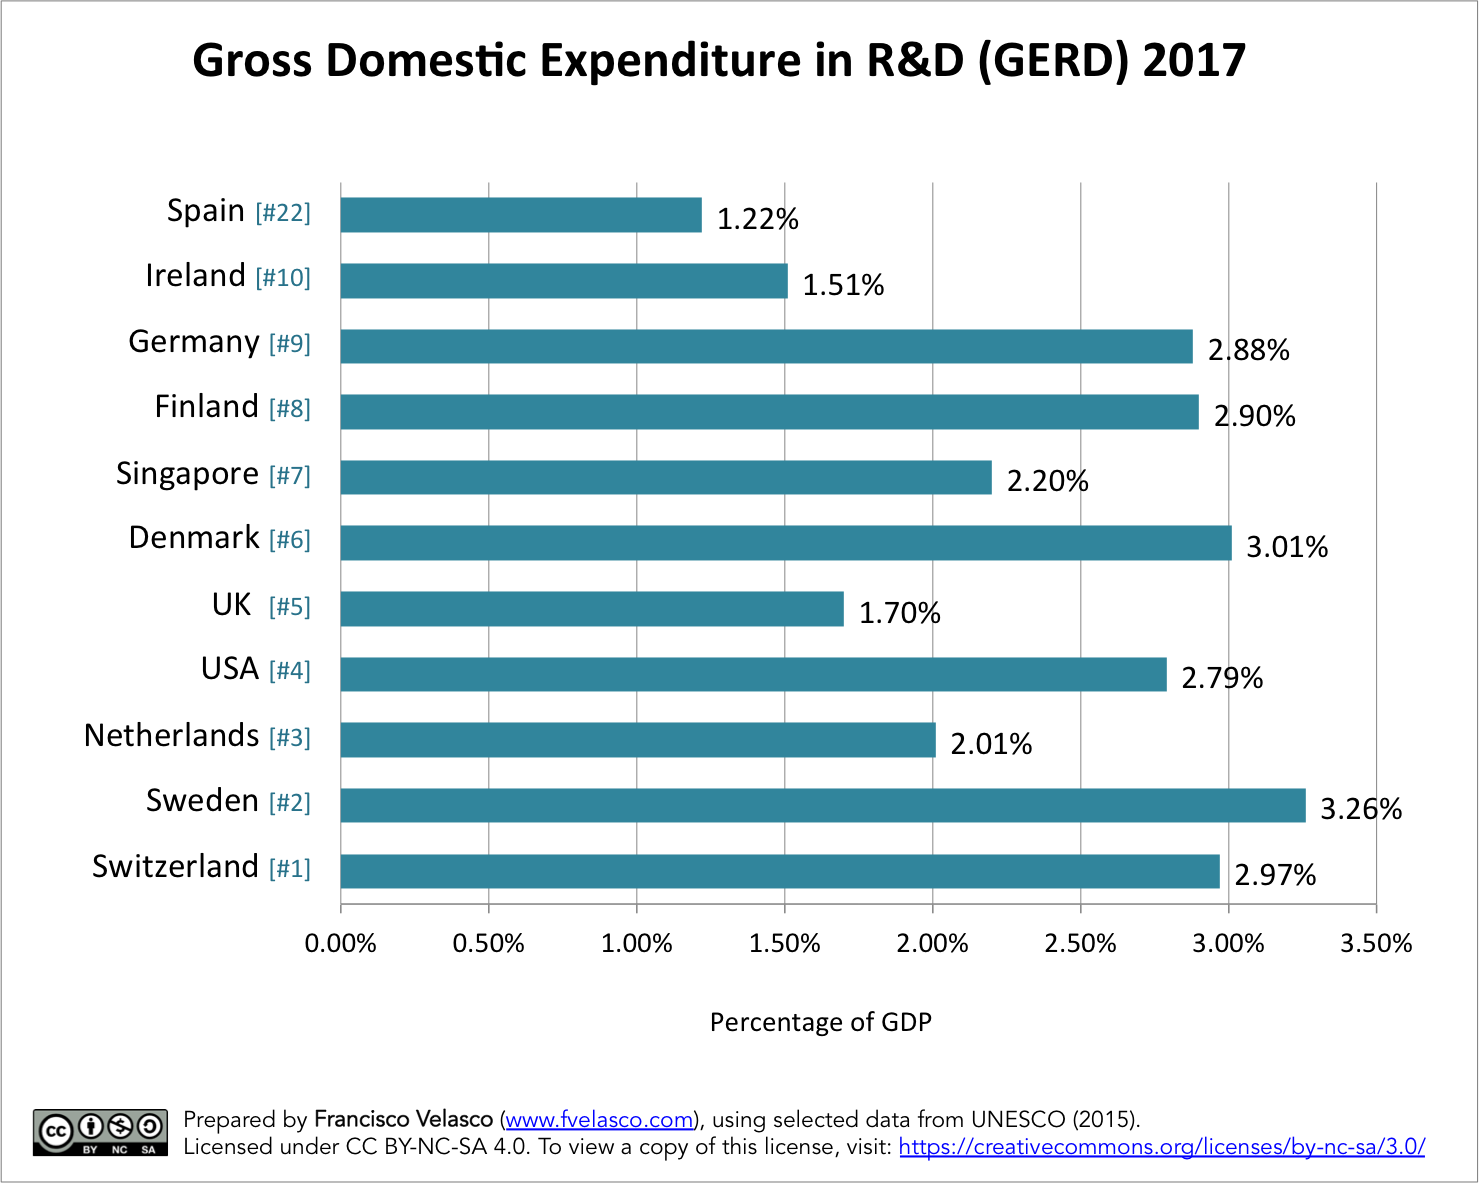 Gross Domestic Expenditure in R&D for the most innovative economies in the world in comparison to Spain. Prepared by Francisco Velasco (www.fvelasco.com). Source: UNESCO (2015).